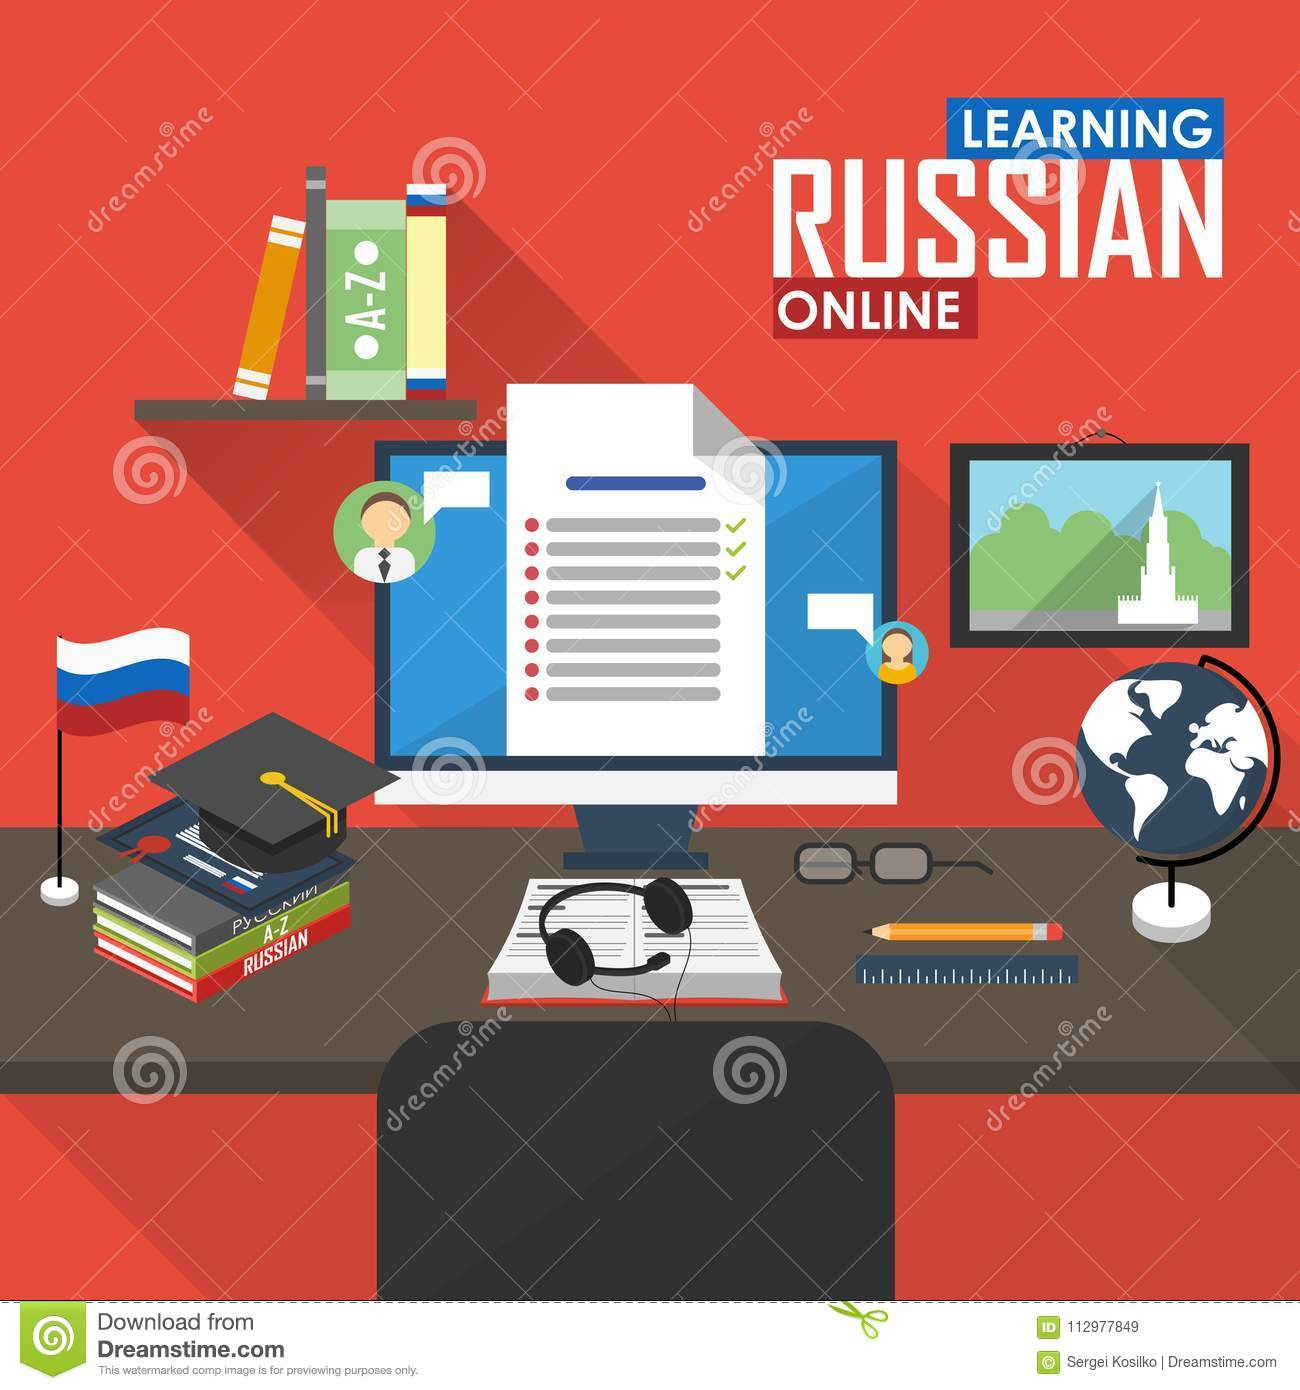 E-learning Russian language.